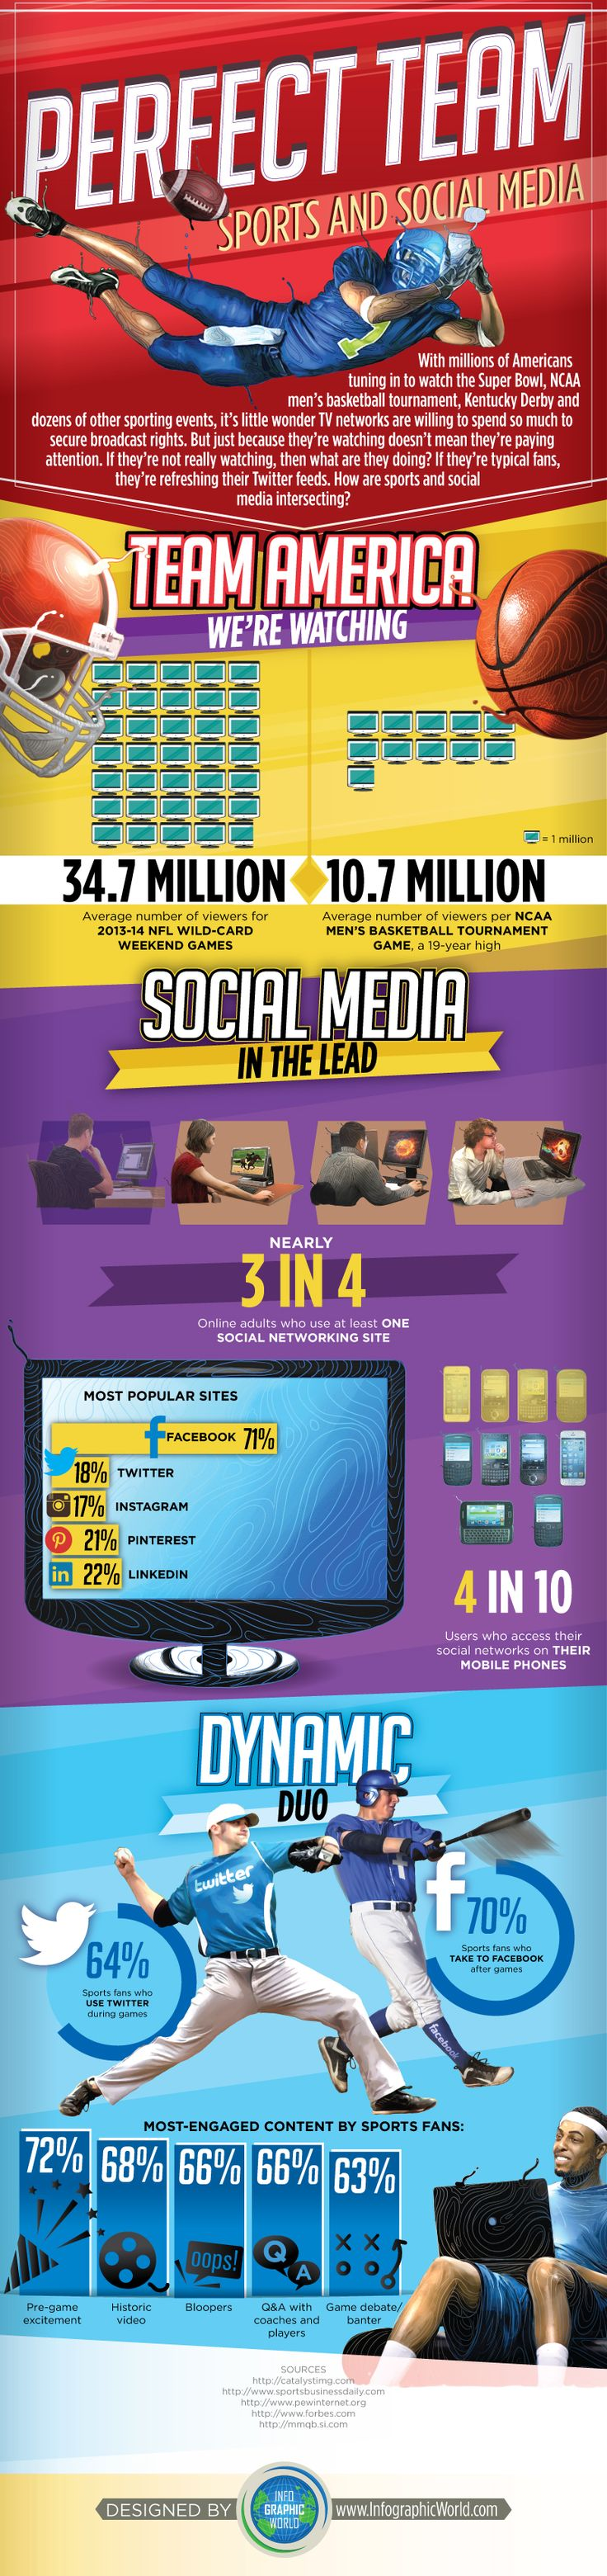 sport and the social media